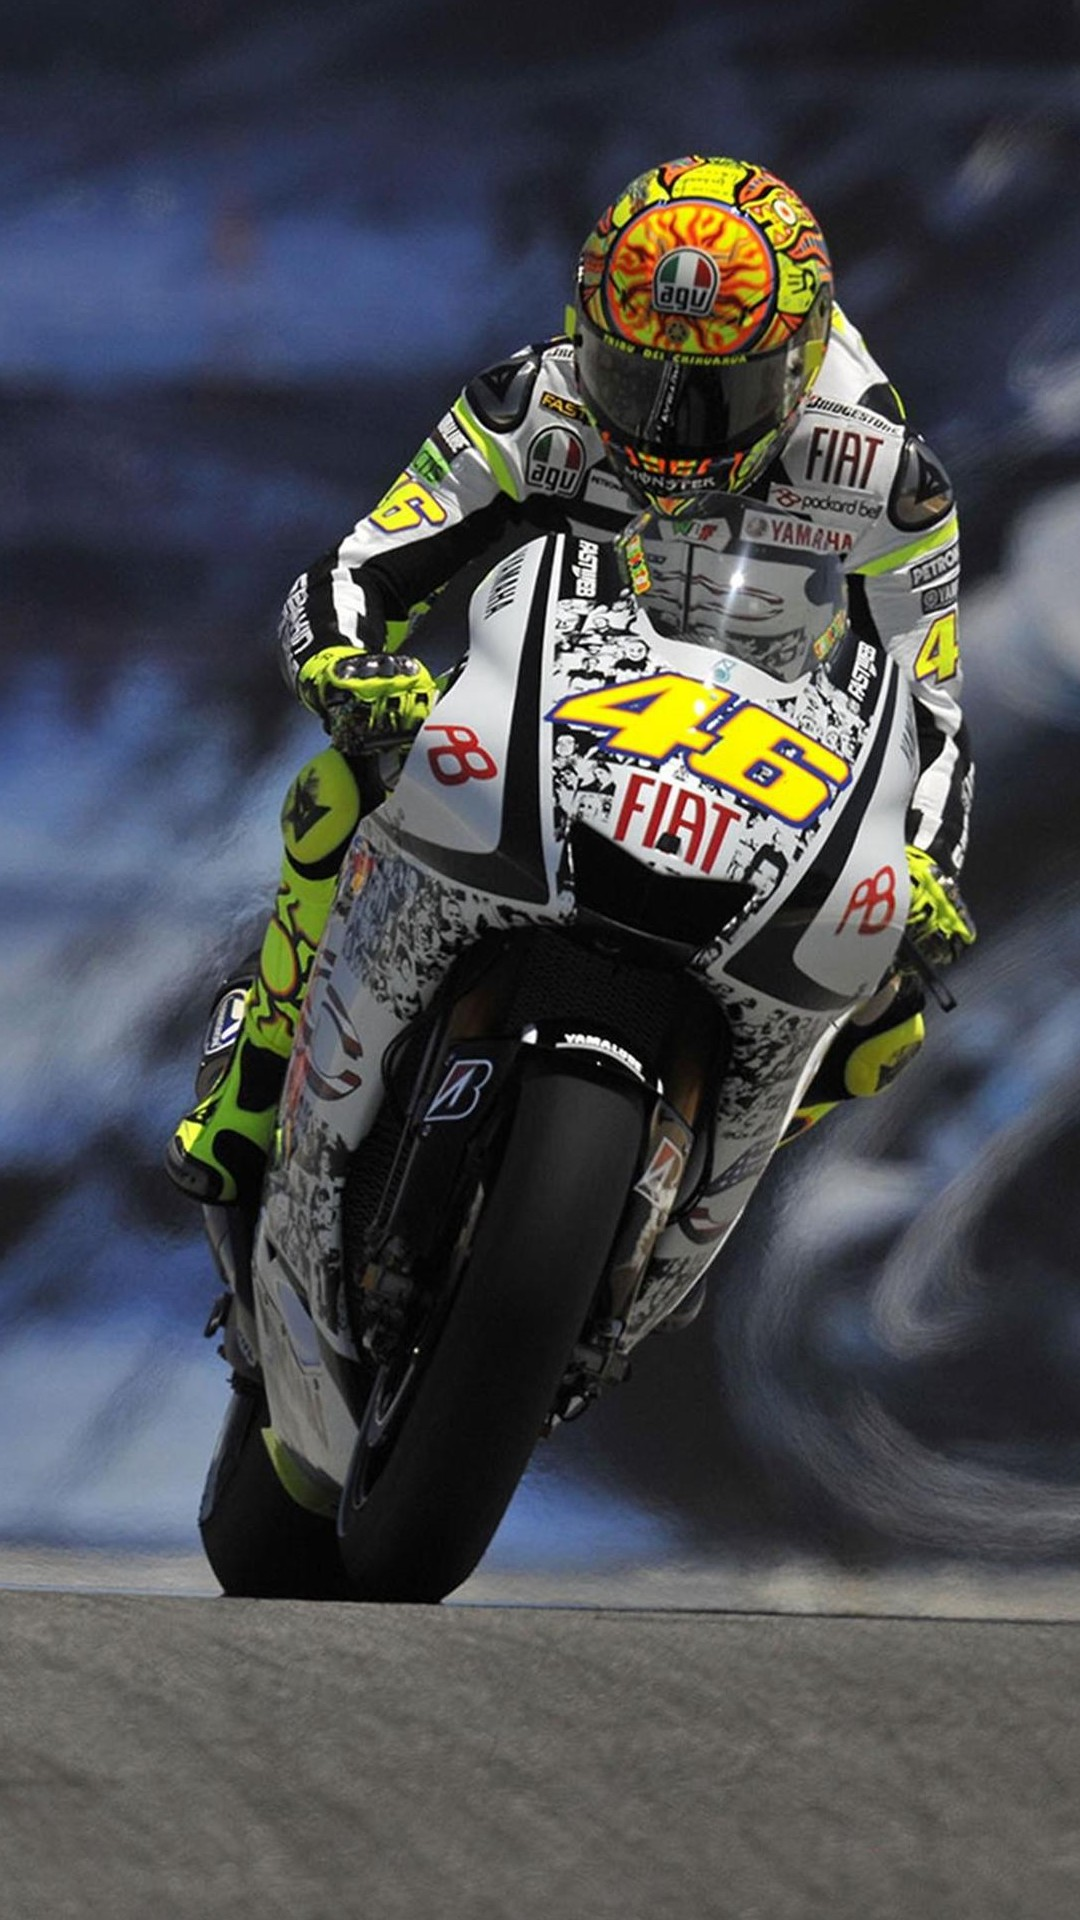 Valentino Rossi MotoGP - Best htc one wallpapers